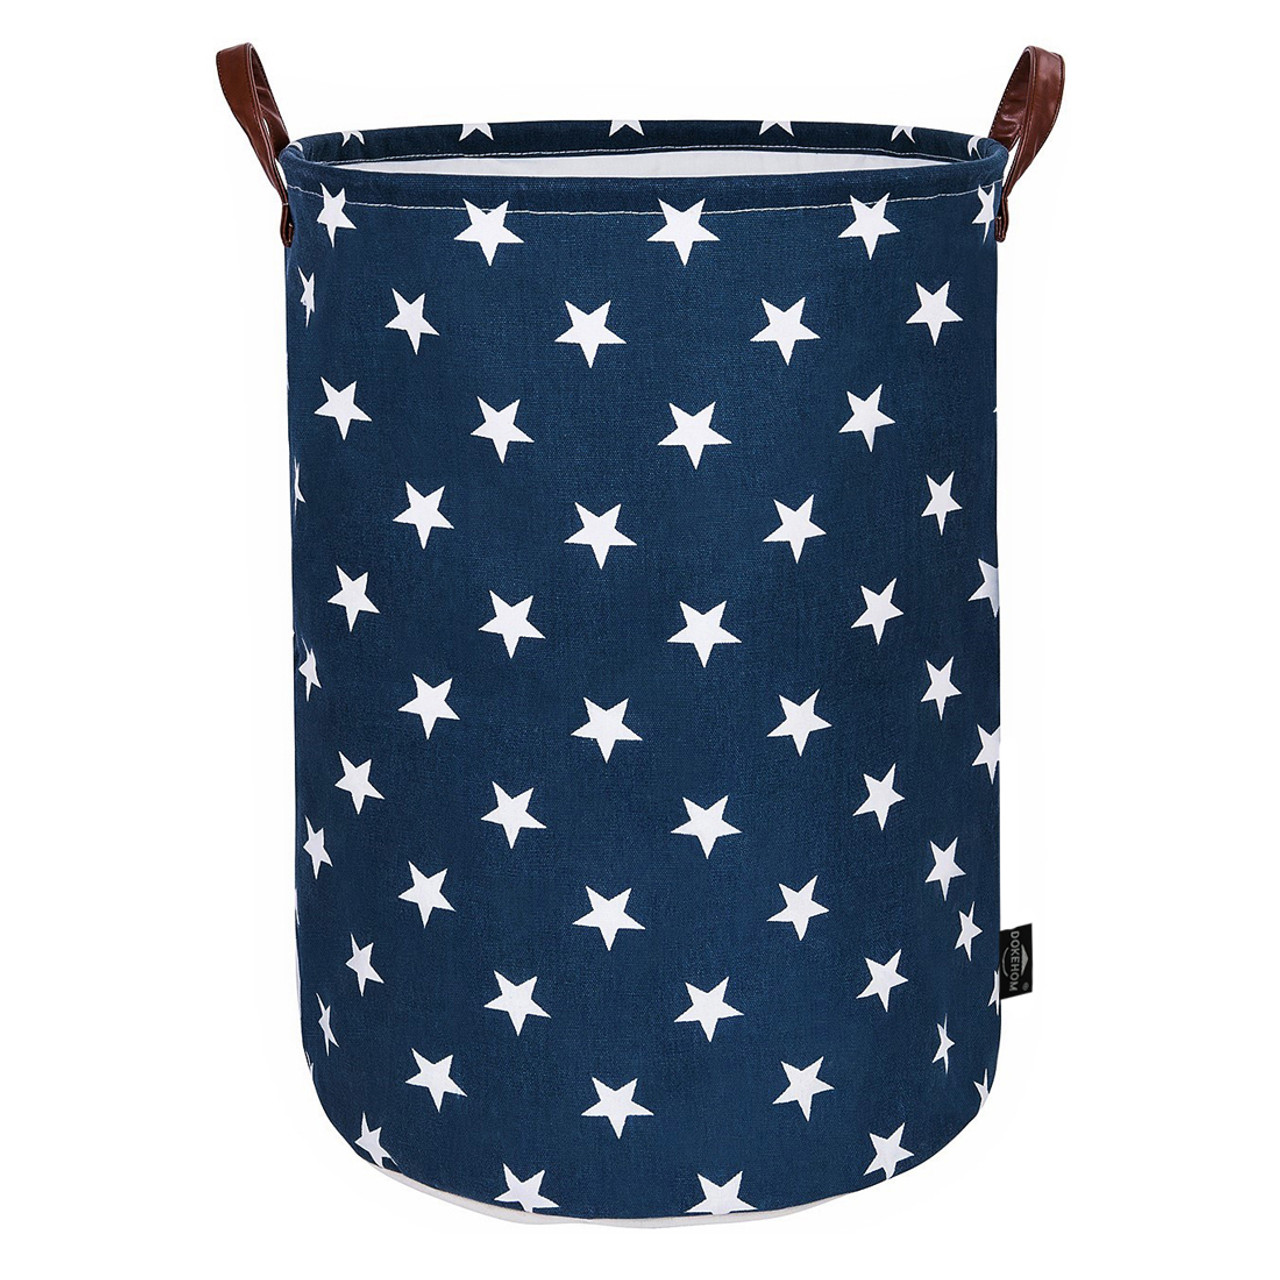 4d85747f7a74 DOKEHOM 19-Inches Thickened Large Drawstring Laundry Basket Storage  -(Available 19 and 22 Inches in 9 Colors)- with Durable Leather Handle,  Cotton ...